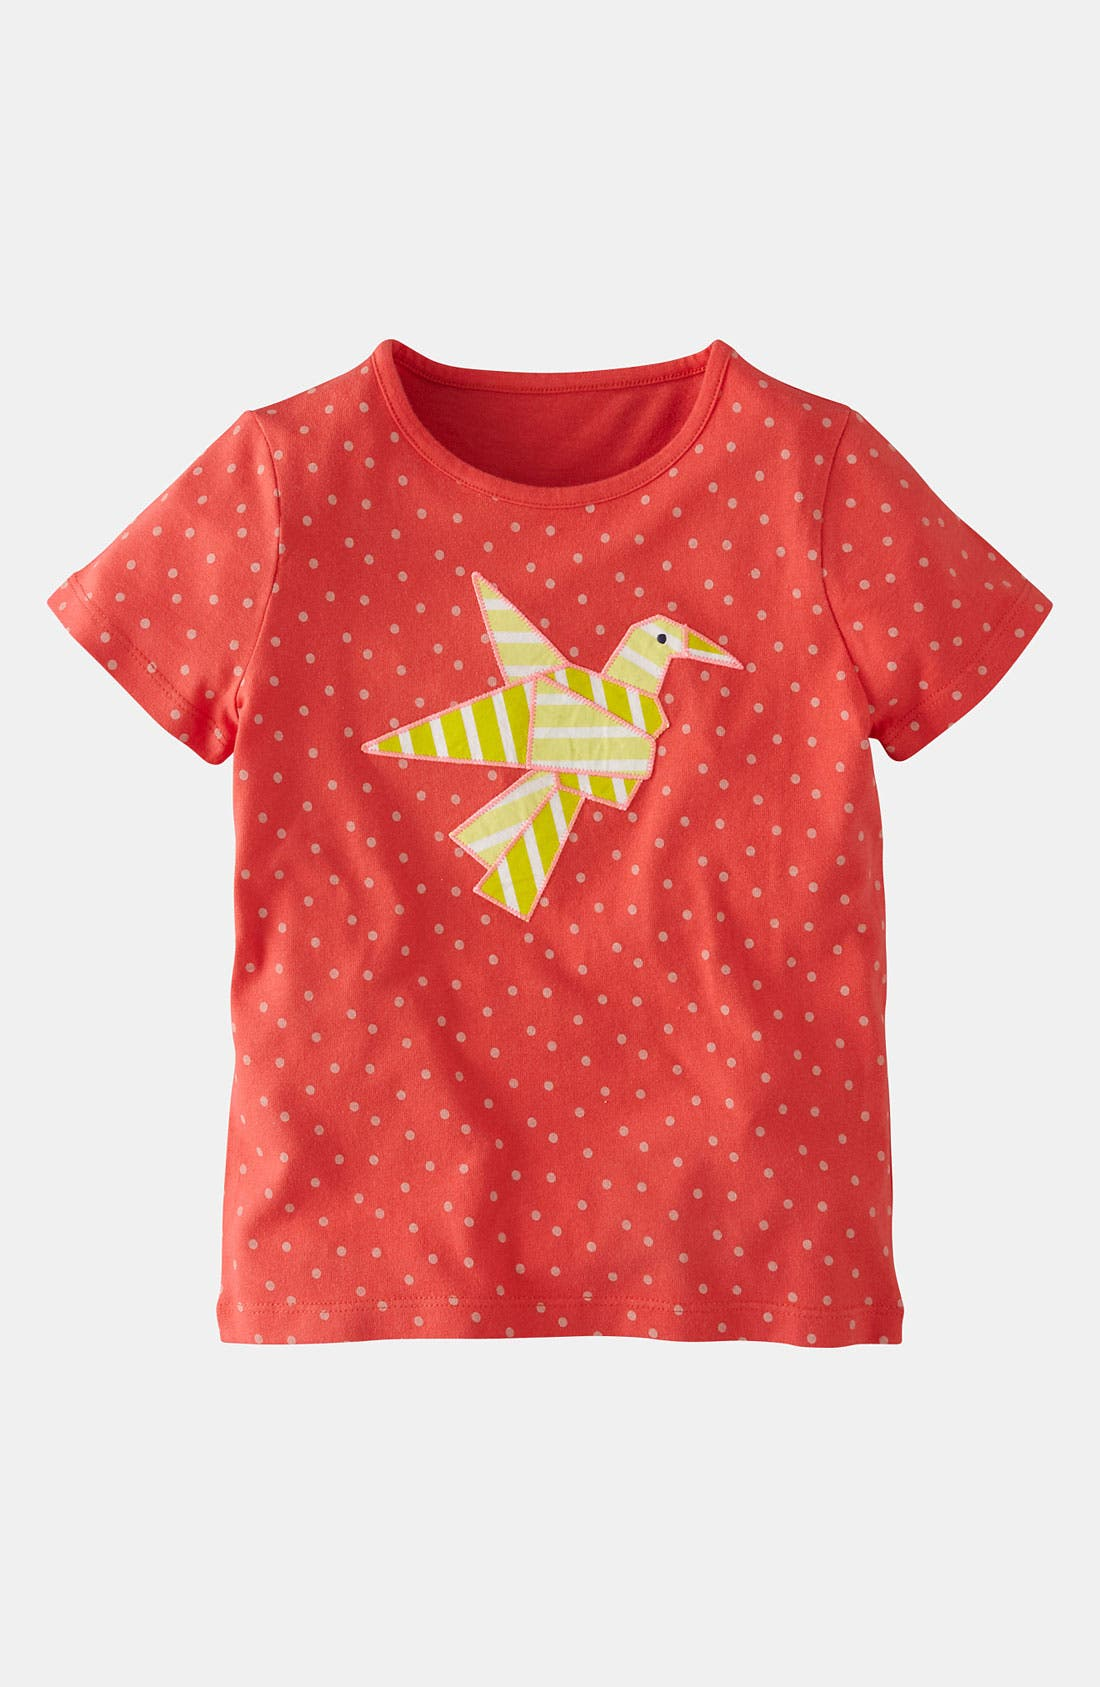 Alternate Image 1 Selected - Mini Boden 'Origami' Appliqué Tee (Little Girls & Big Girls)